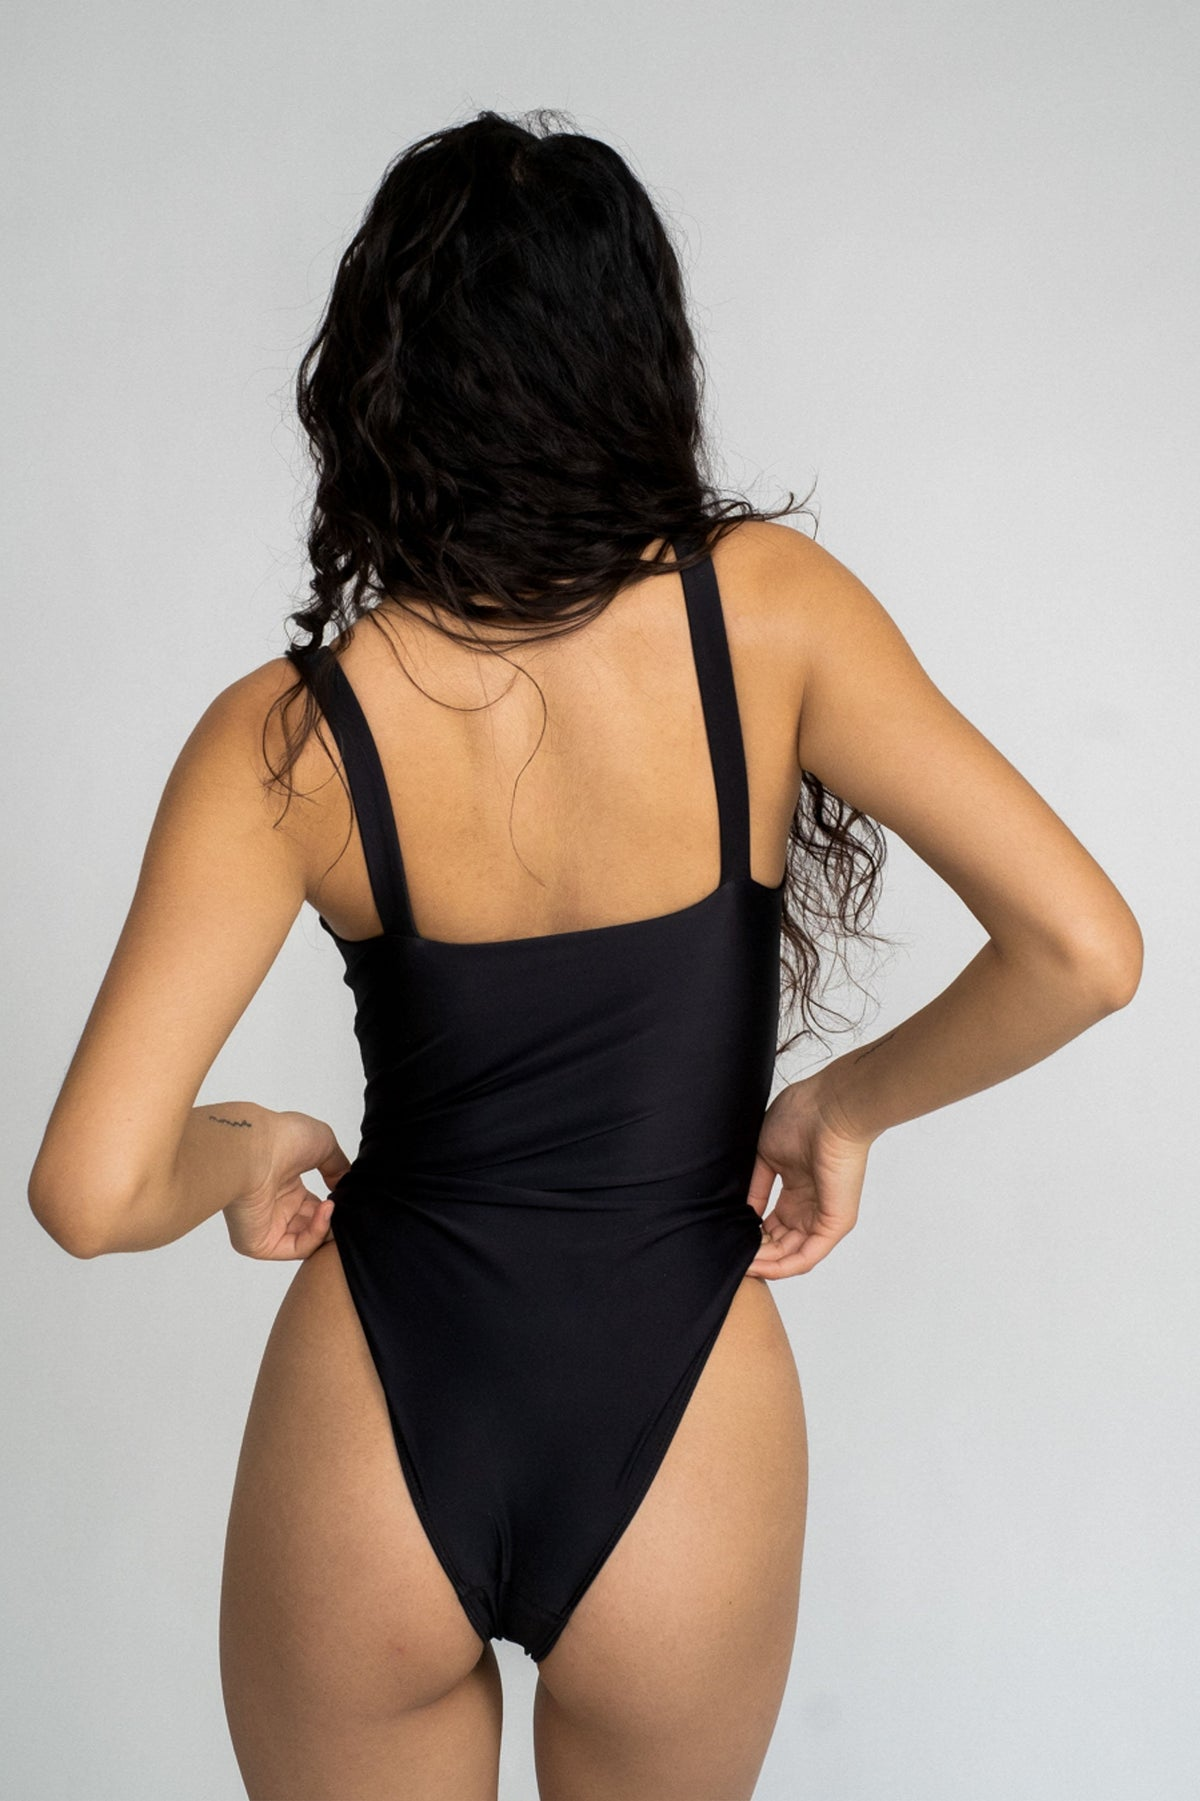 The back of a woman with her hands on her hips wearing a black one piece swimsuit with a straight neckline.